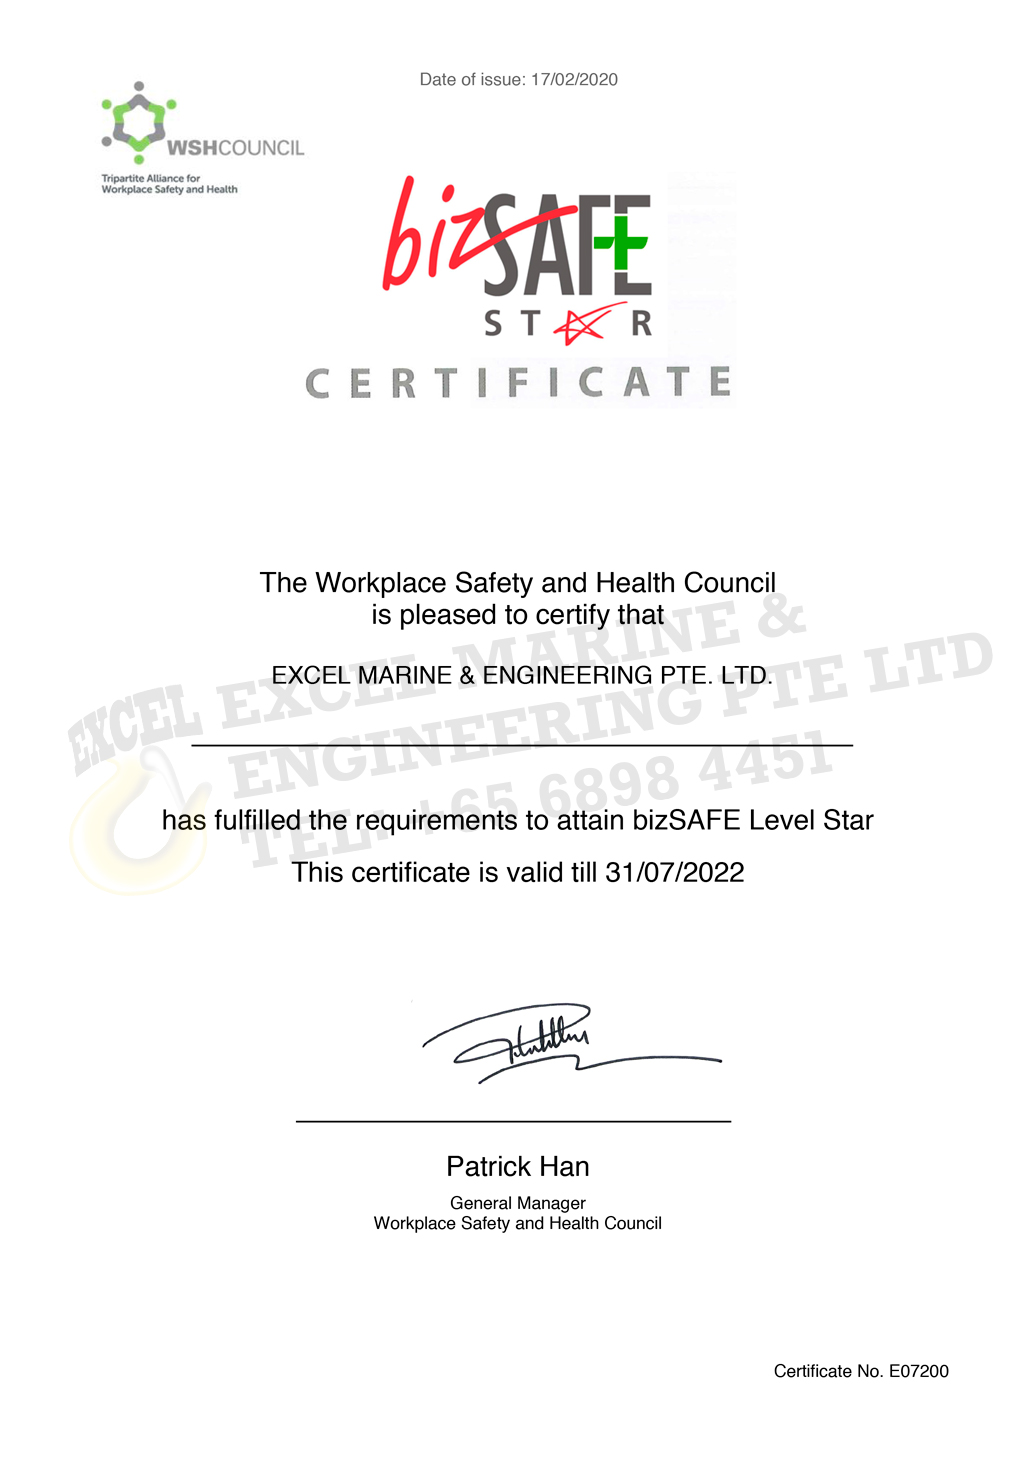 bizSAFE Level Star